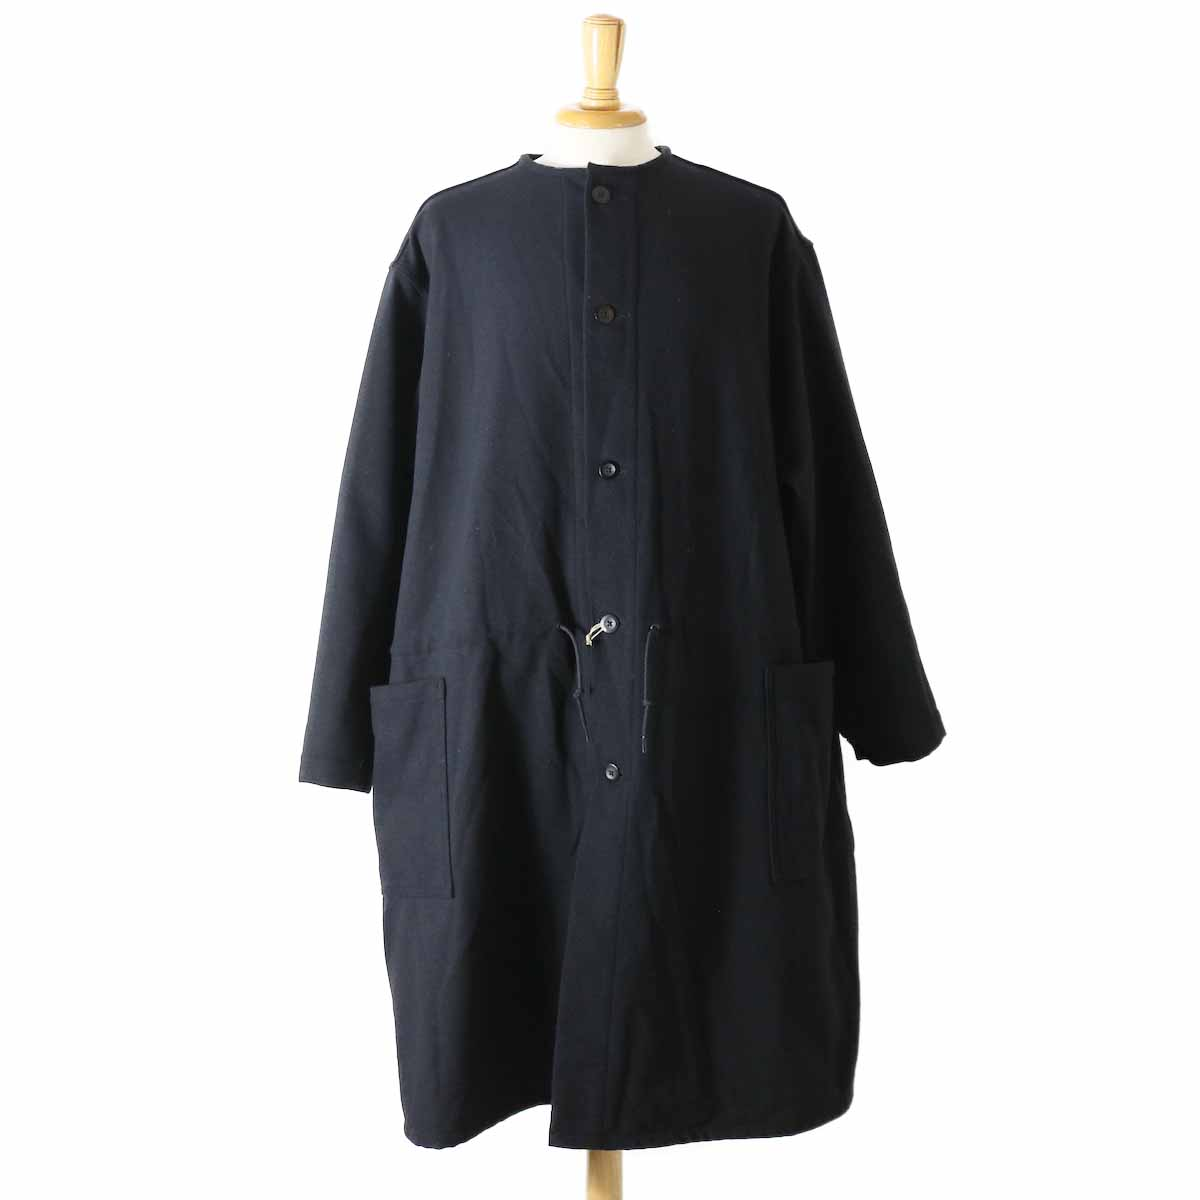 orSlow / Cotton Shell No Collar Coat -Melton Wool Herringbone Twill(BLACK)